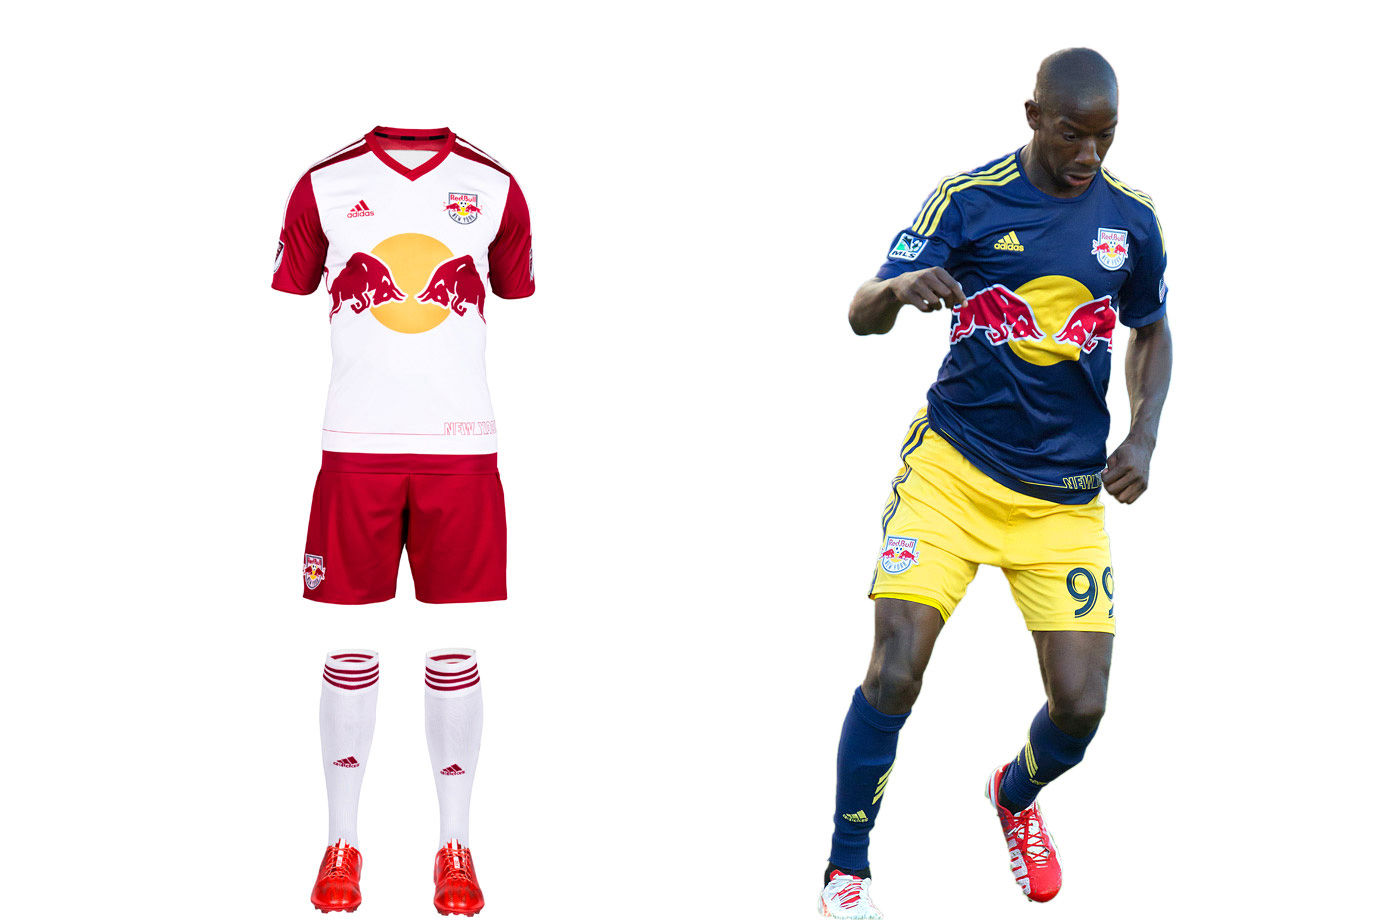 New York Red Bulls uniform